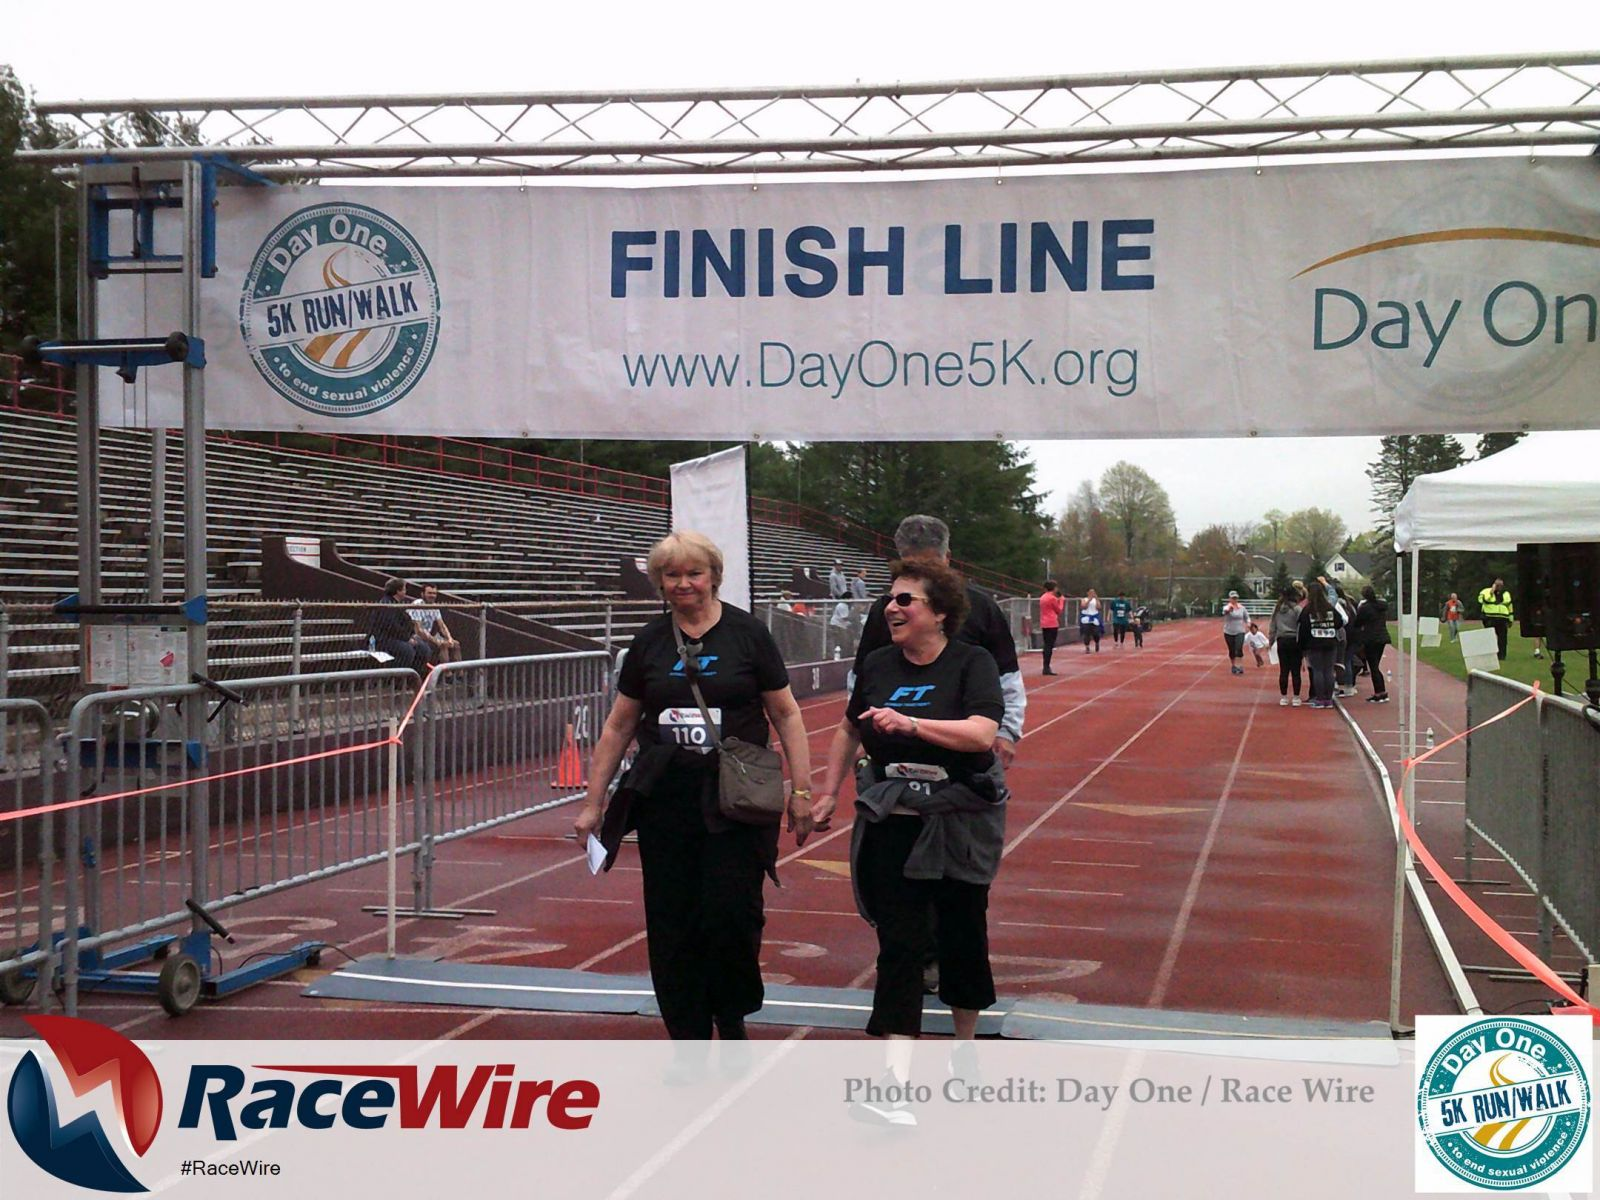 Three people crossing DayOne 5K finish line